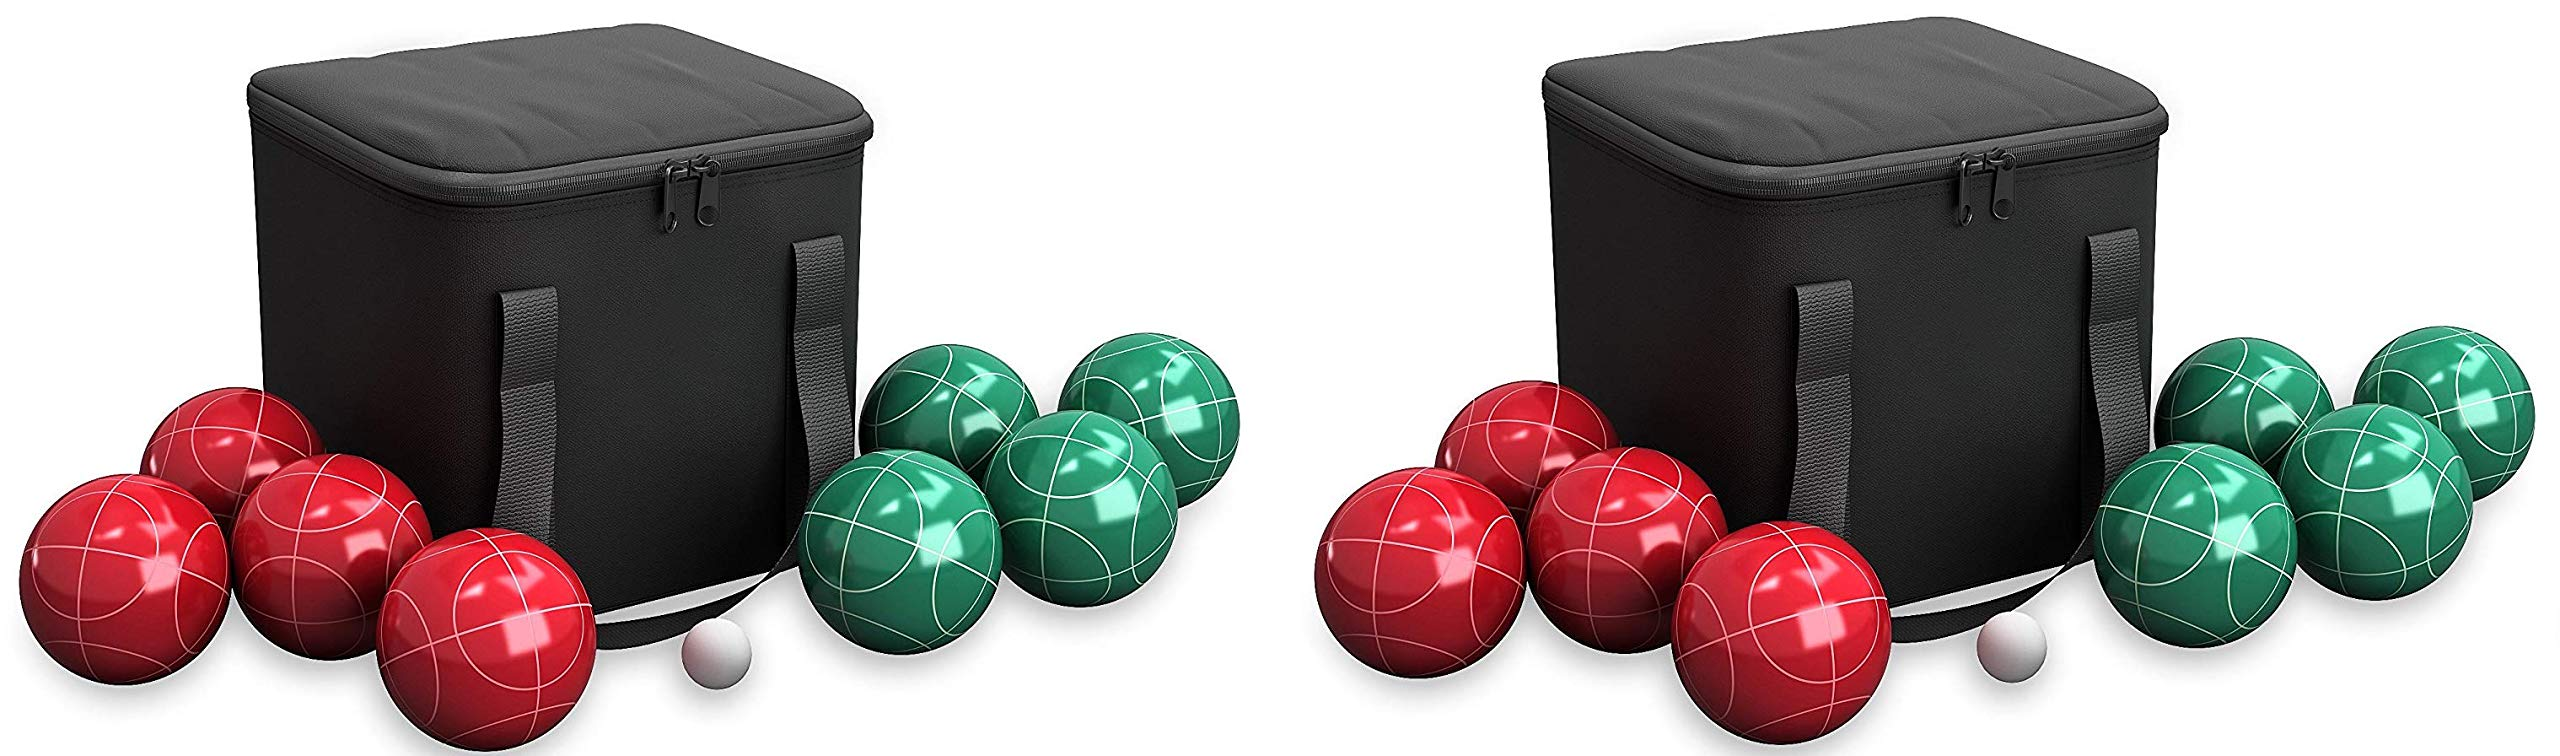 Hey! Play!! 80-76090 Bocce Ball Set- Outdoor Family Bocce Game for Backyard, Lawn, Beach & More- 4 Red & 4 Green Balls, Pallino & Carrying Case (2-Pack)